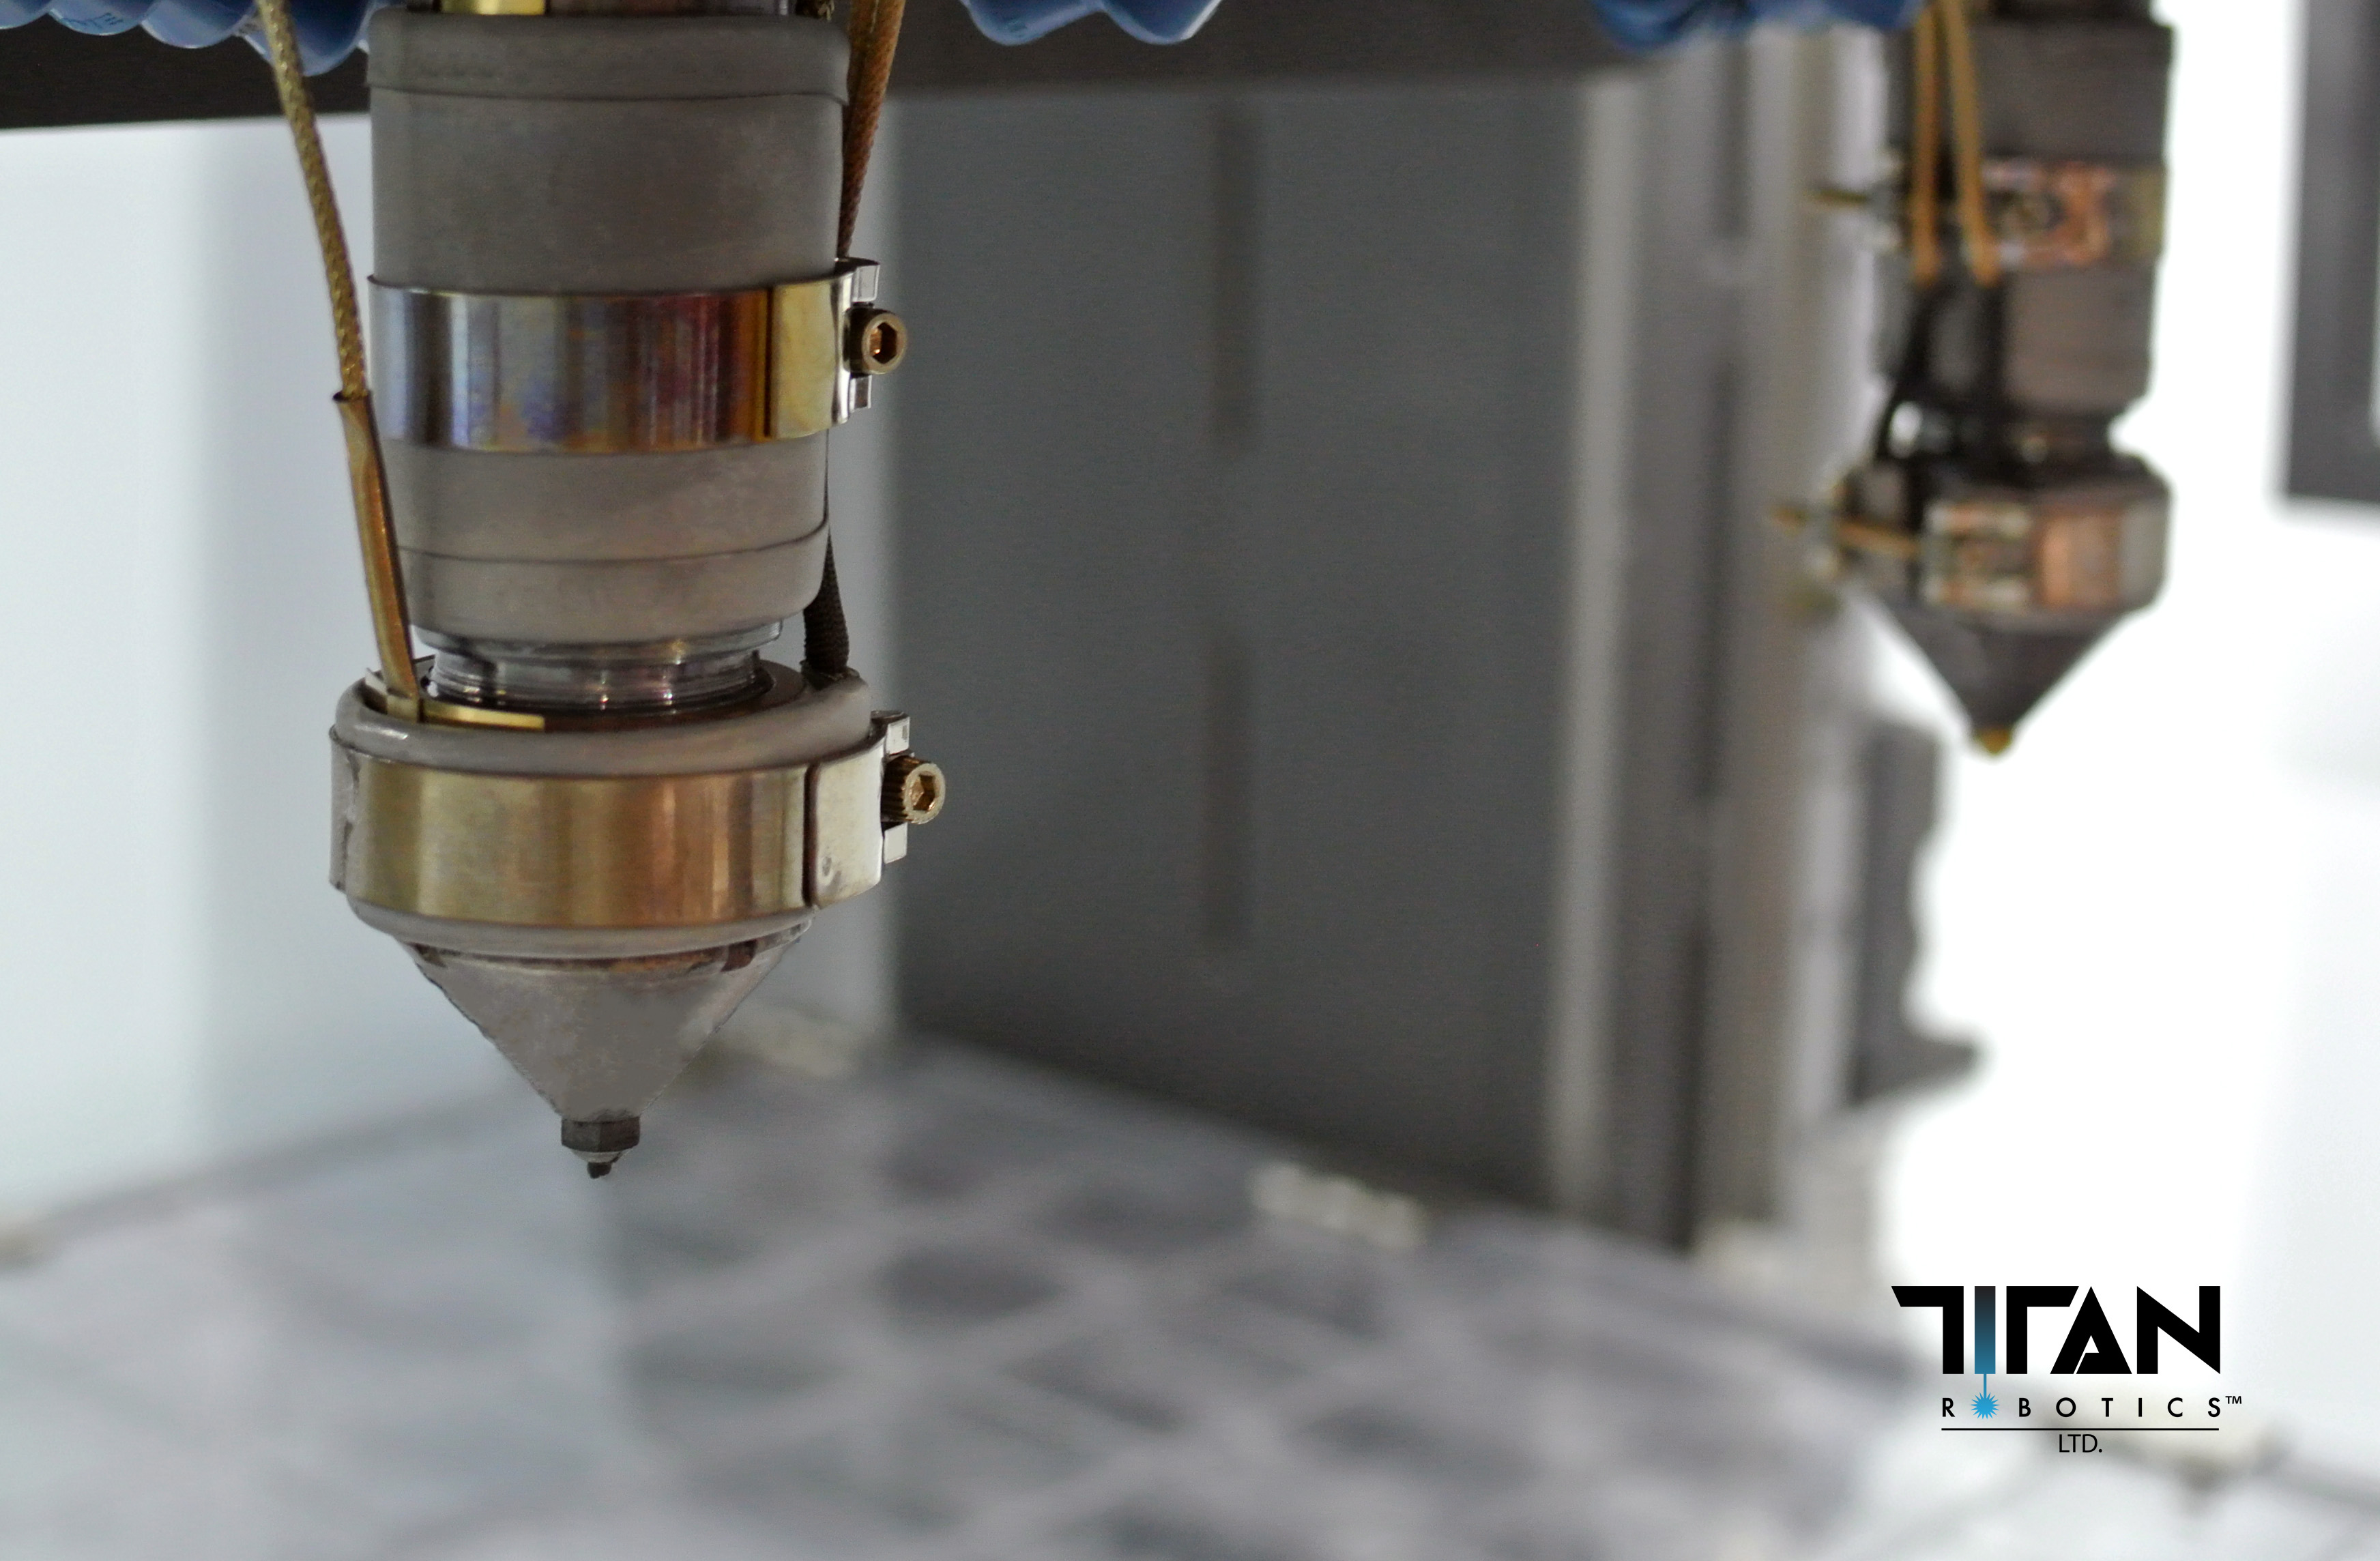 Dual Pellet Extrusion in the Atlas-H line. Photo via Titan Robotics